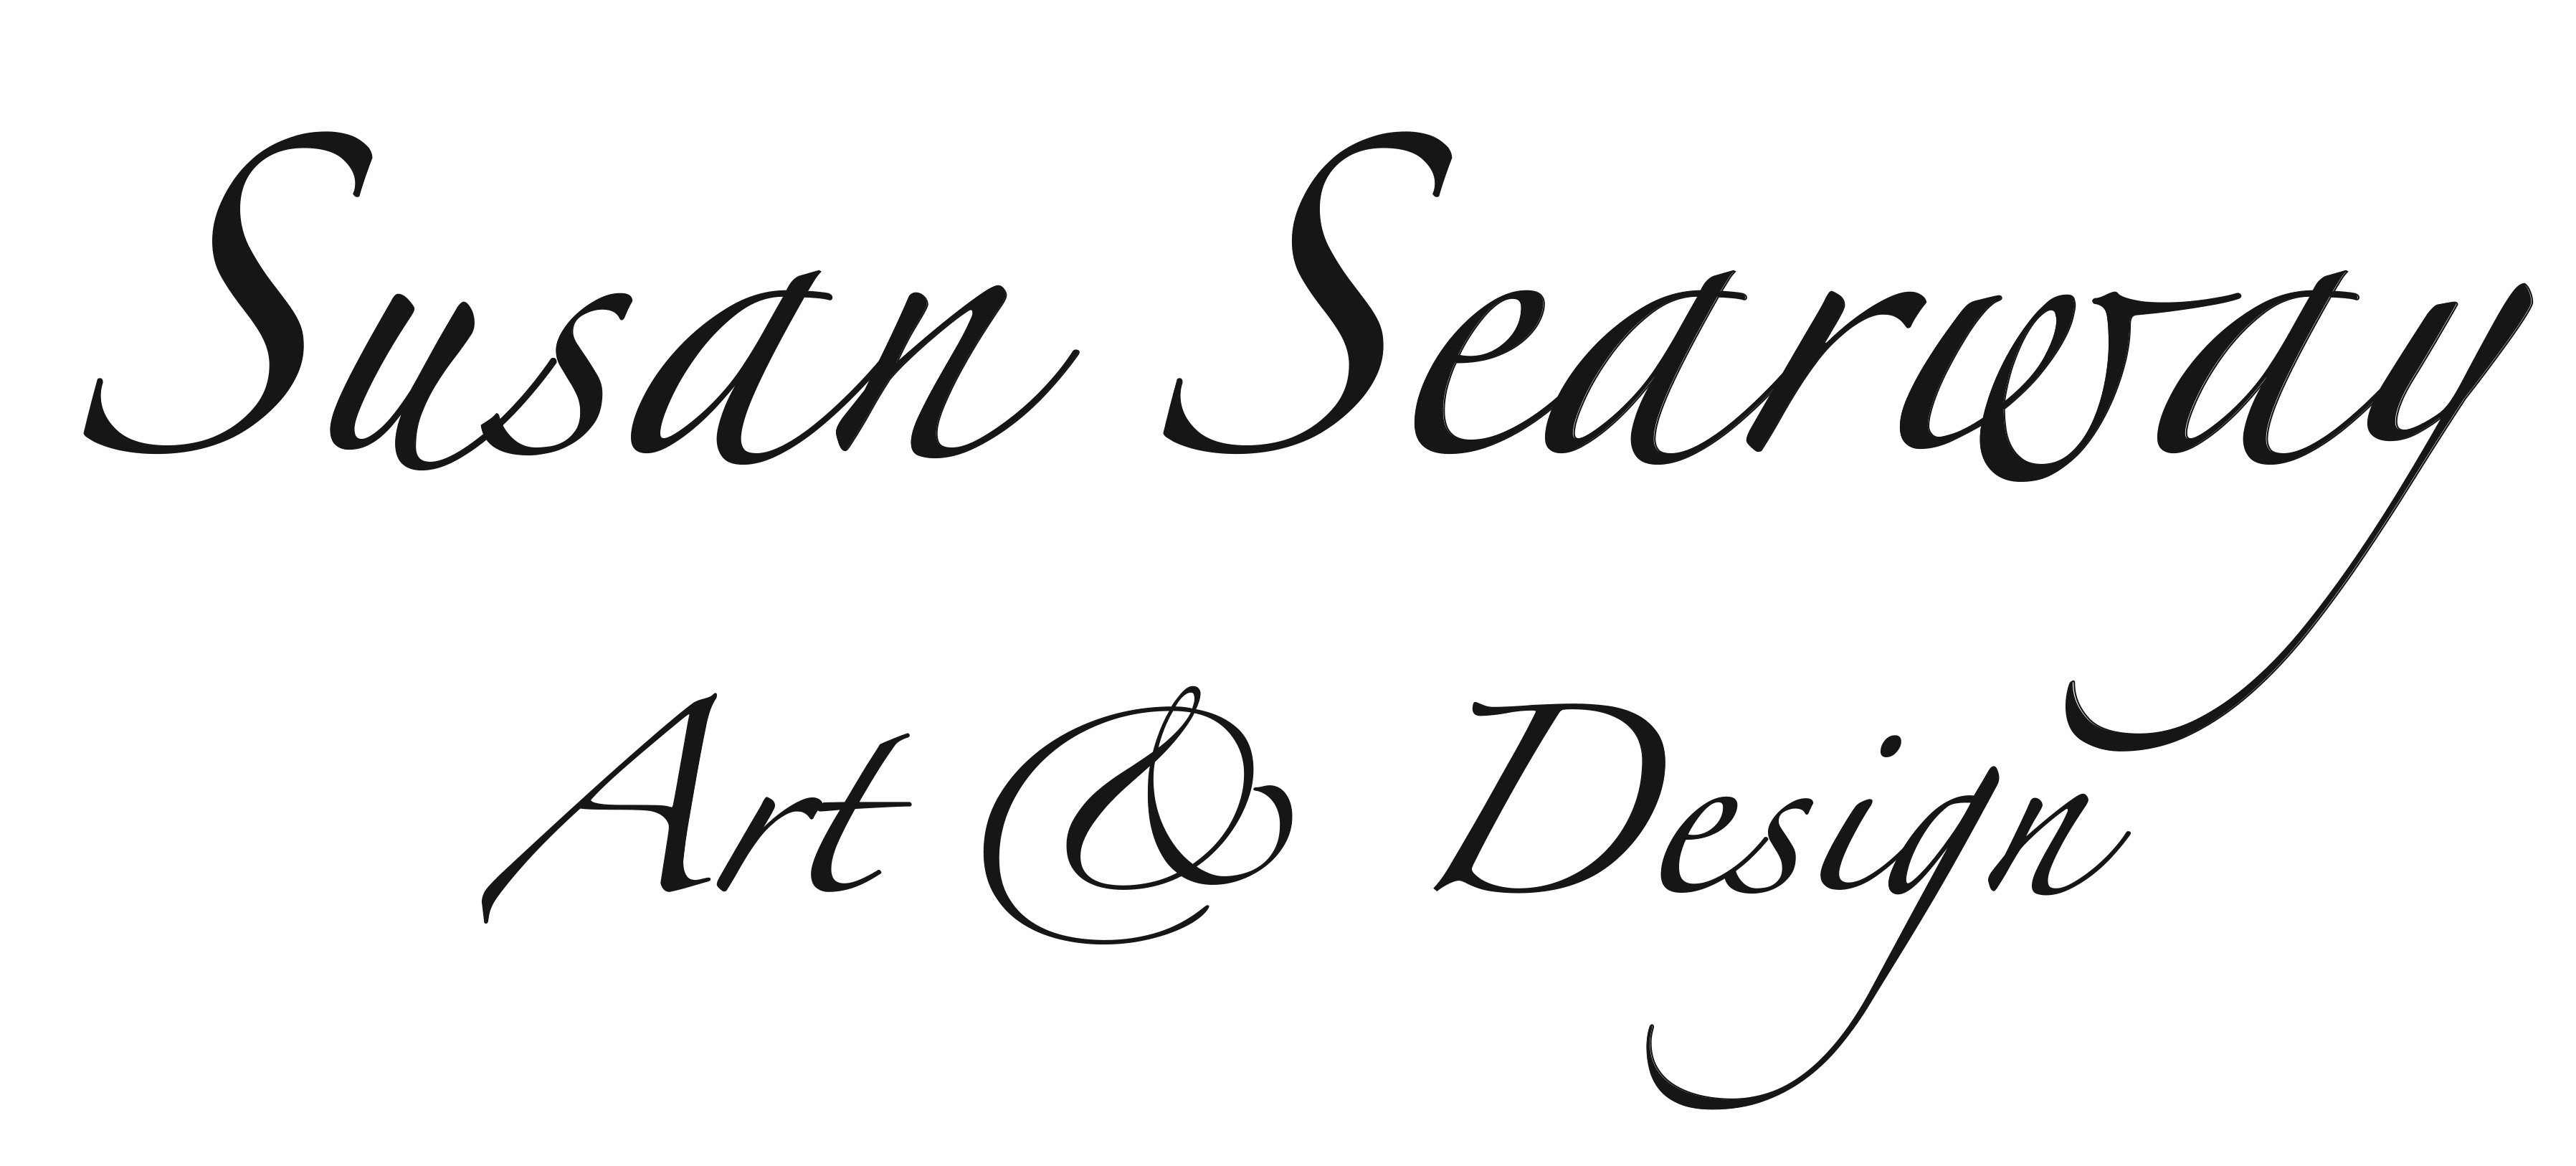 Susan Searway Art & Design